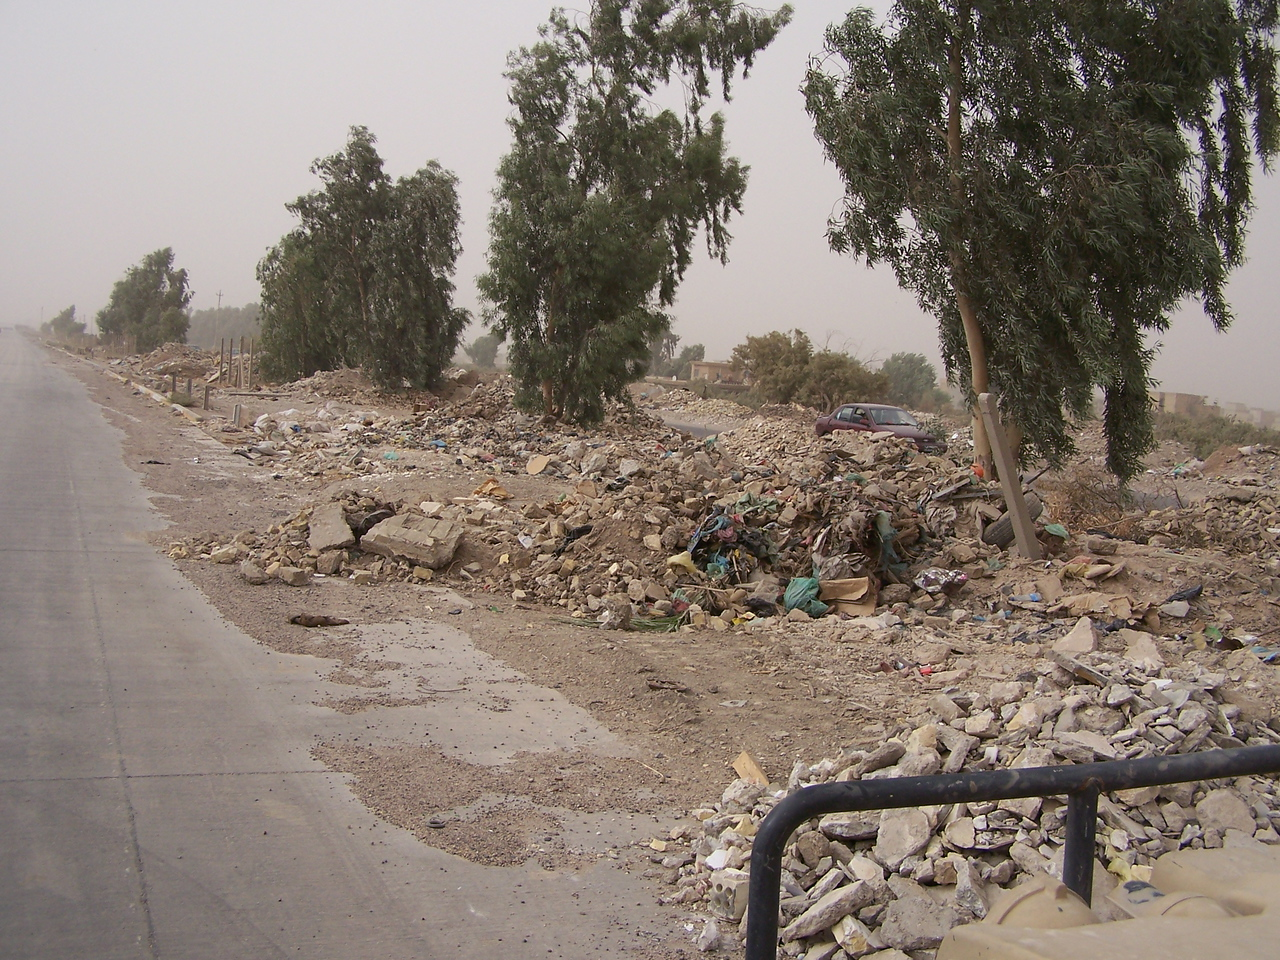 The streets of Baghdad are lined with rubble and trash.  A bomb could be hidden anywhere.